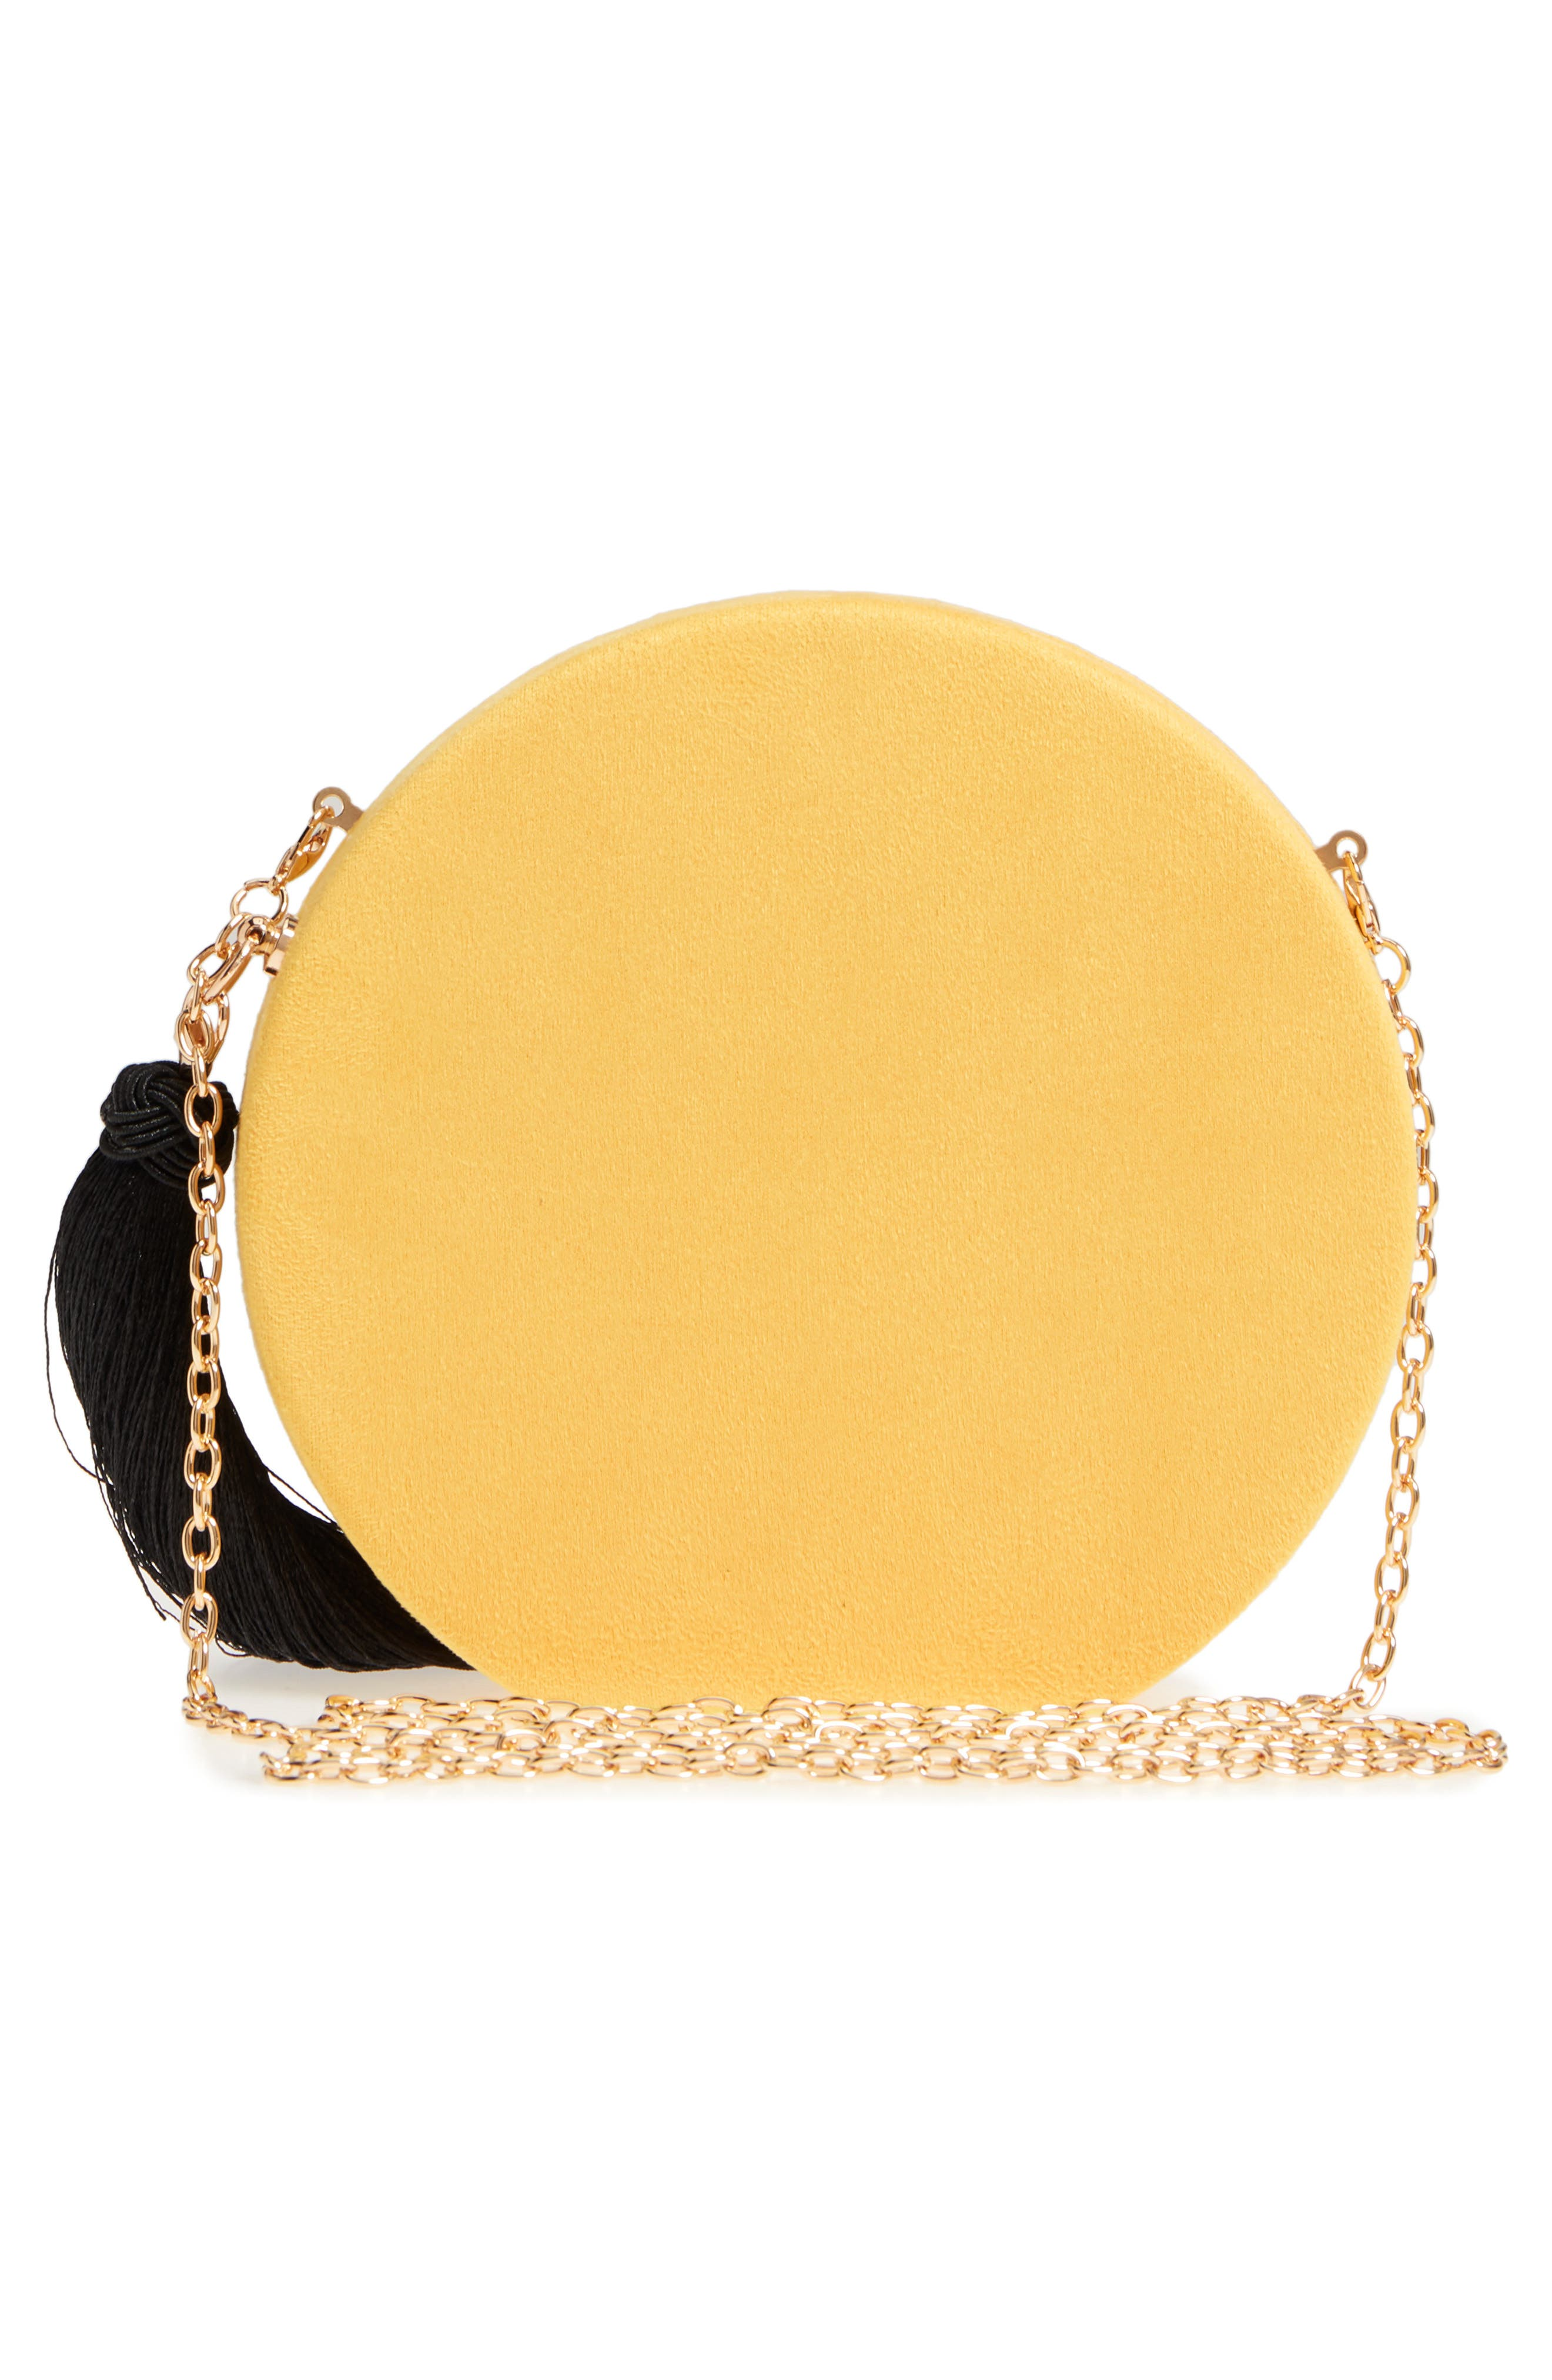 Couture Round Tassel Clutch,                             Alternate thumbnail 3, color,                             Yellow